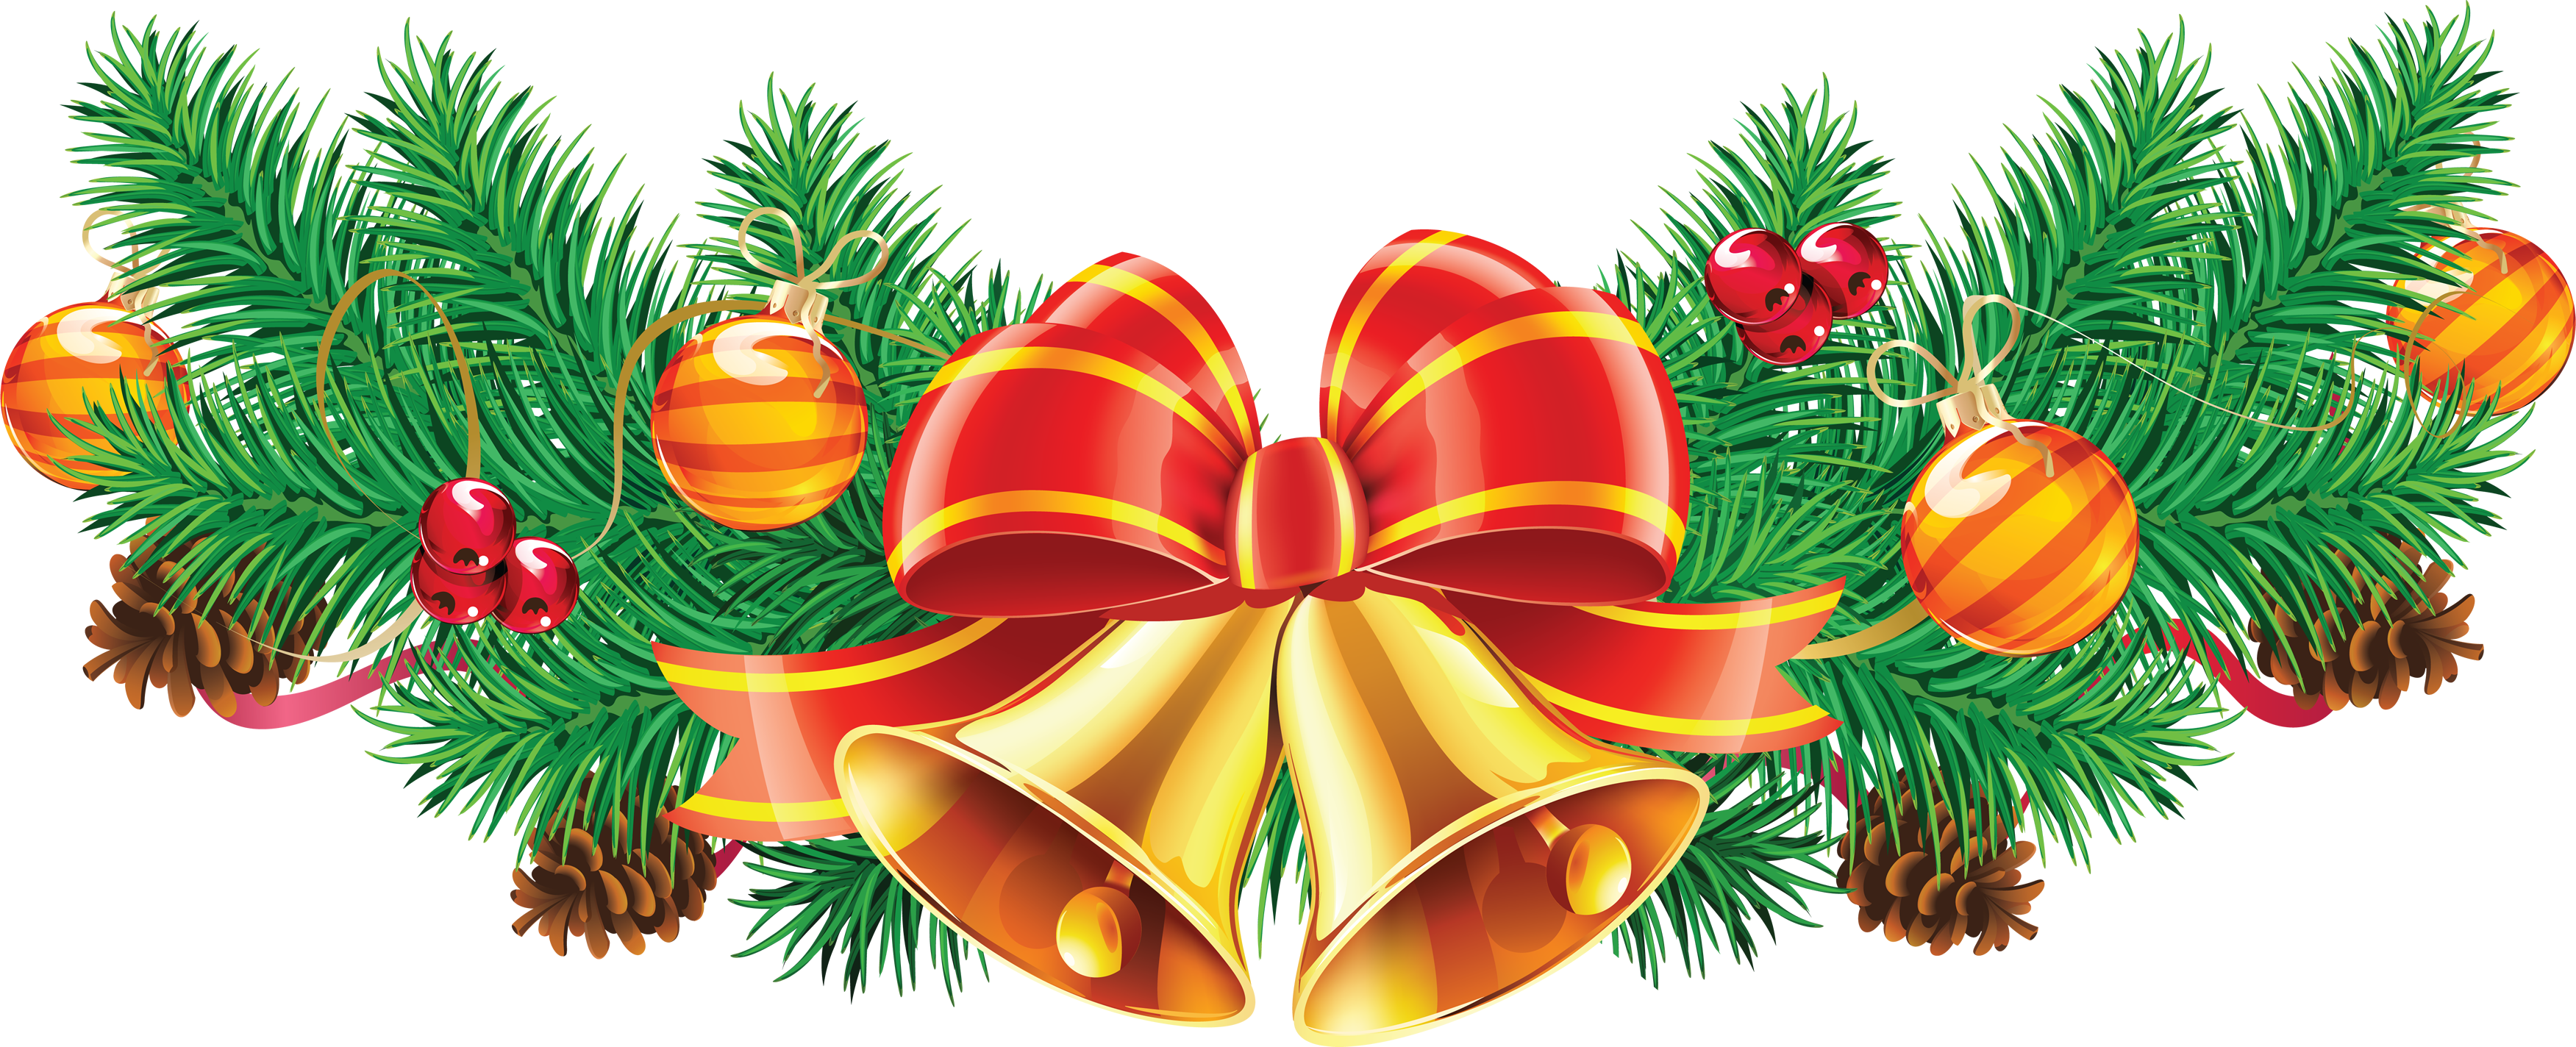 Christmas png. High resolution clipart free